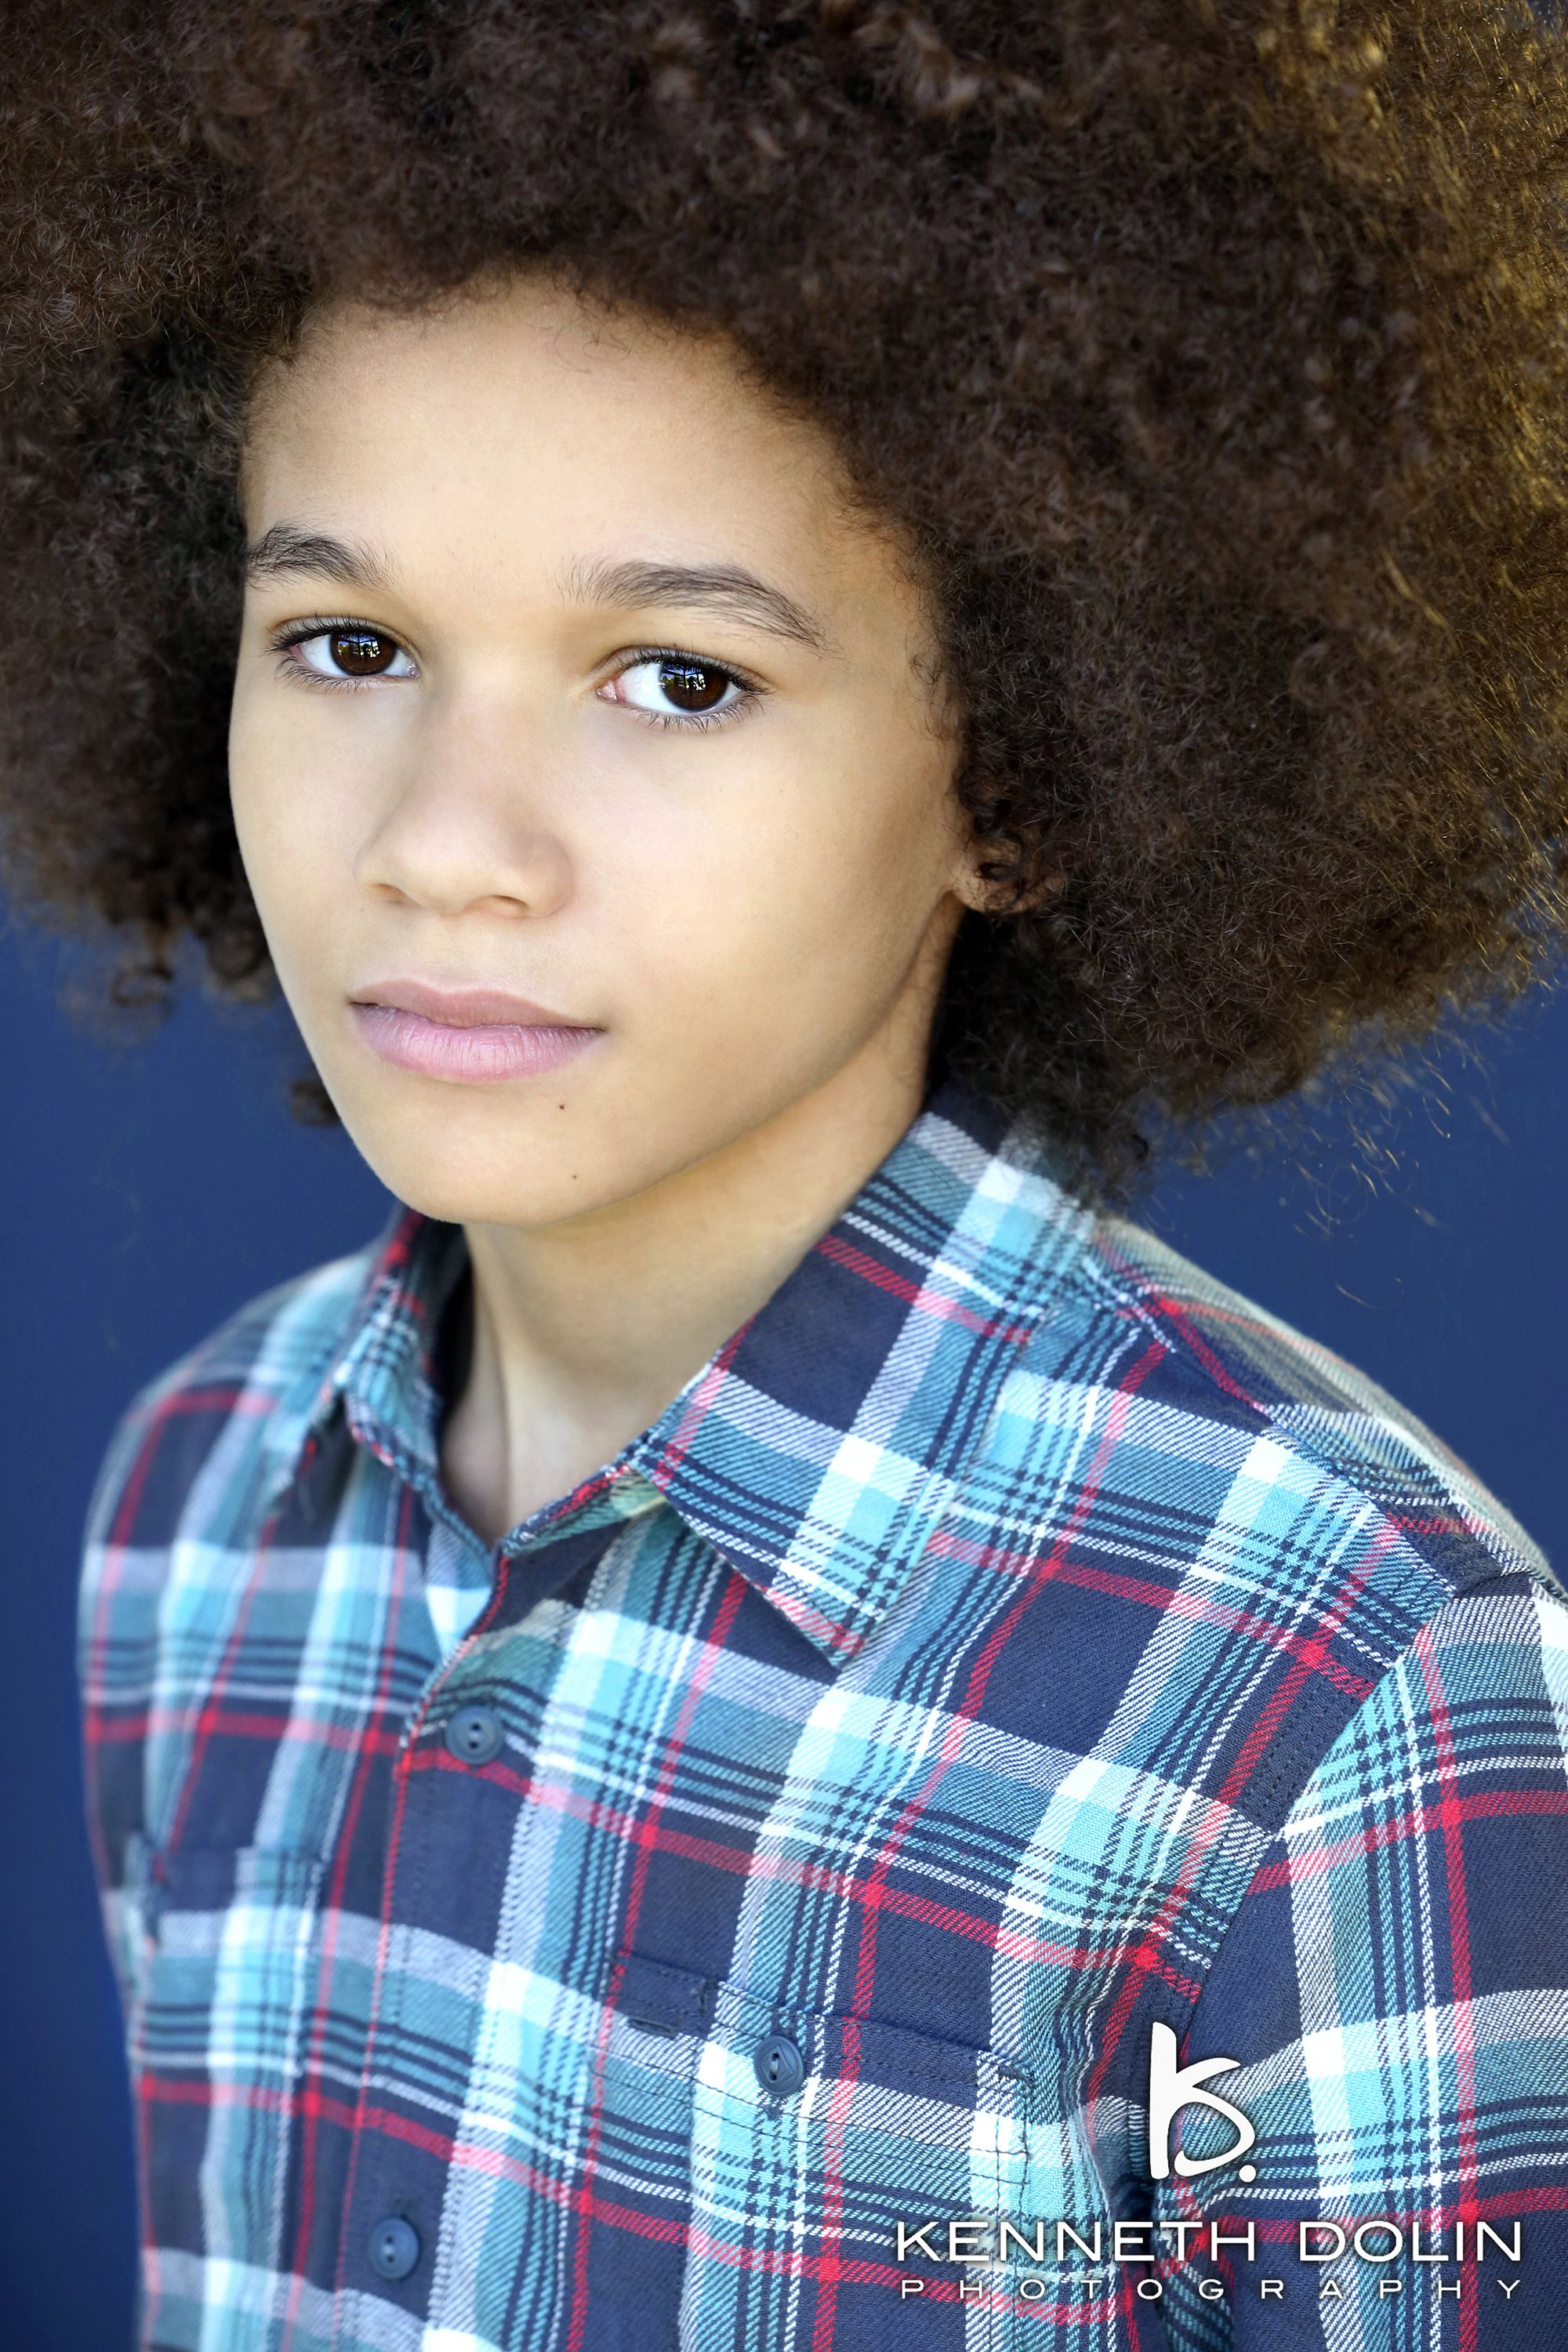 Armani shot by Kenneth Dolin | Kids | Child actors, Jackson, Cute boys